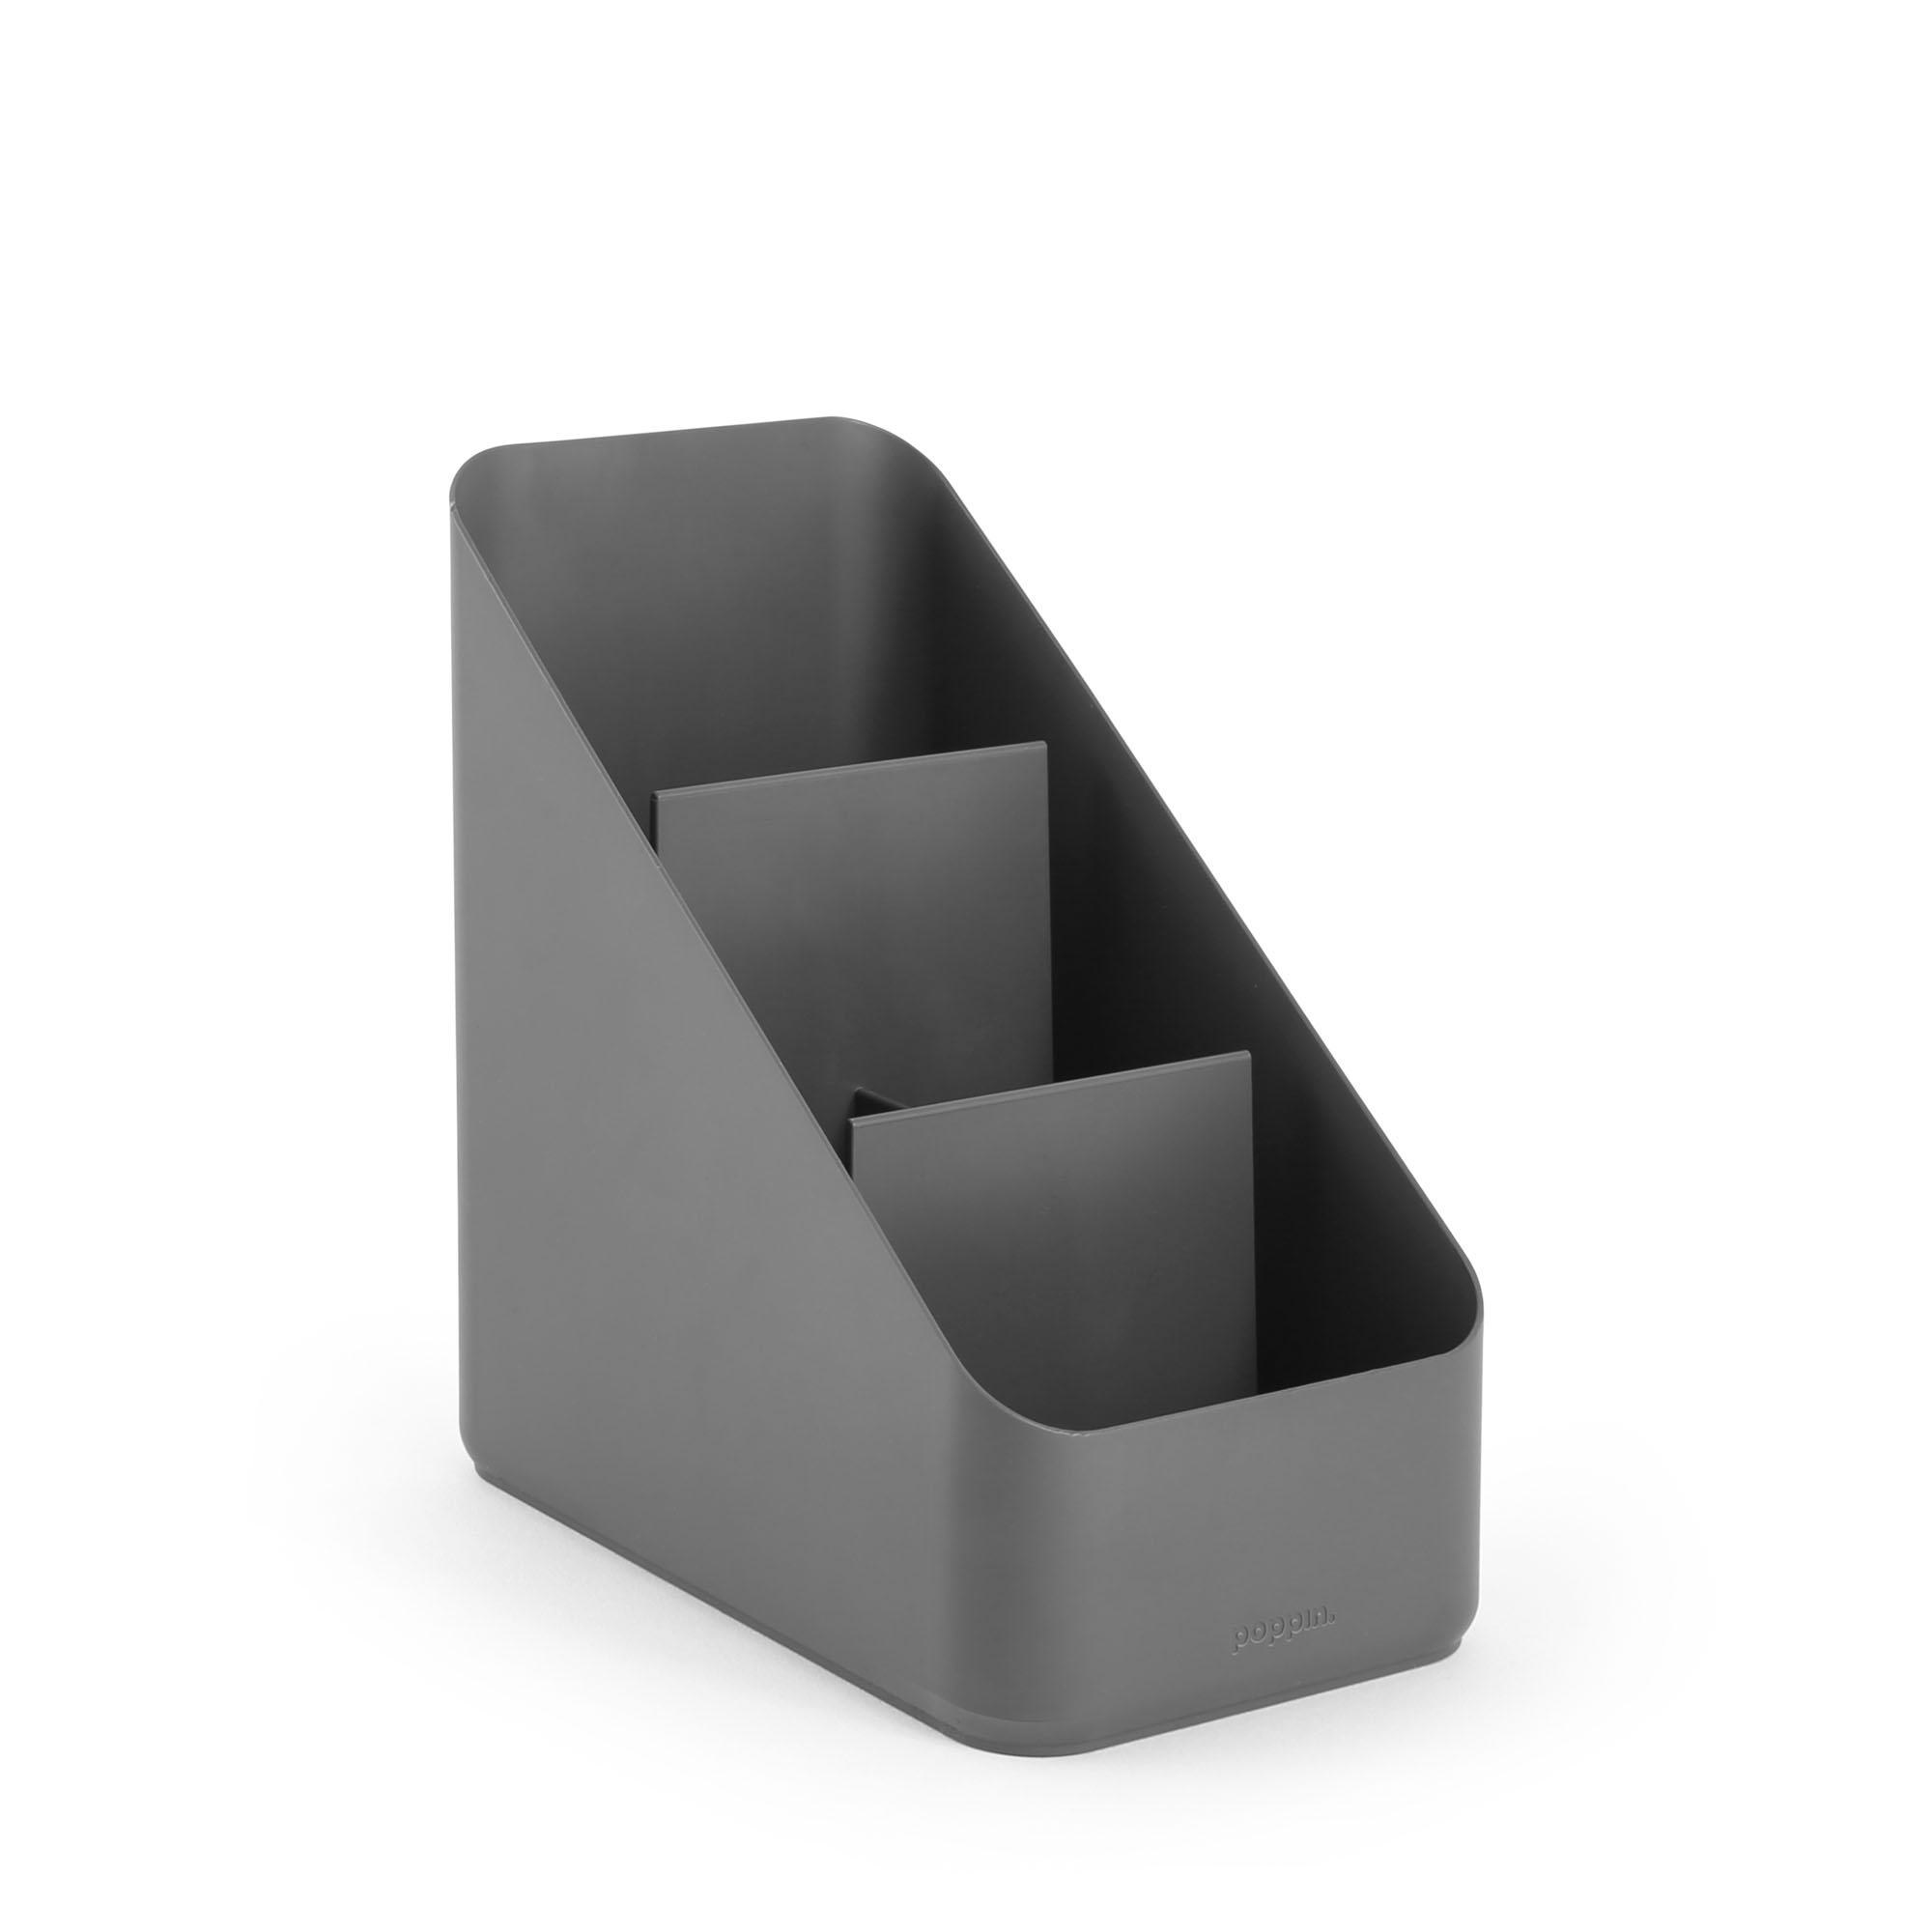 Dark Gray Small Desk Organizer Desk Organization Poppin